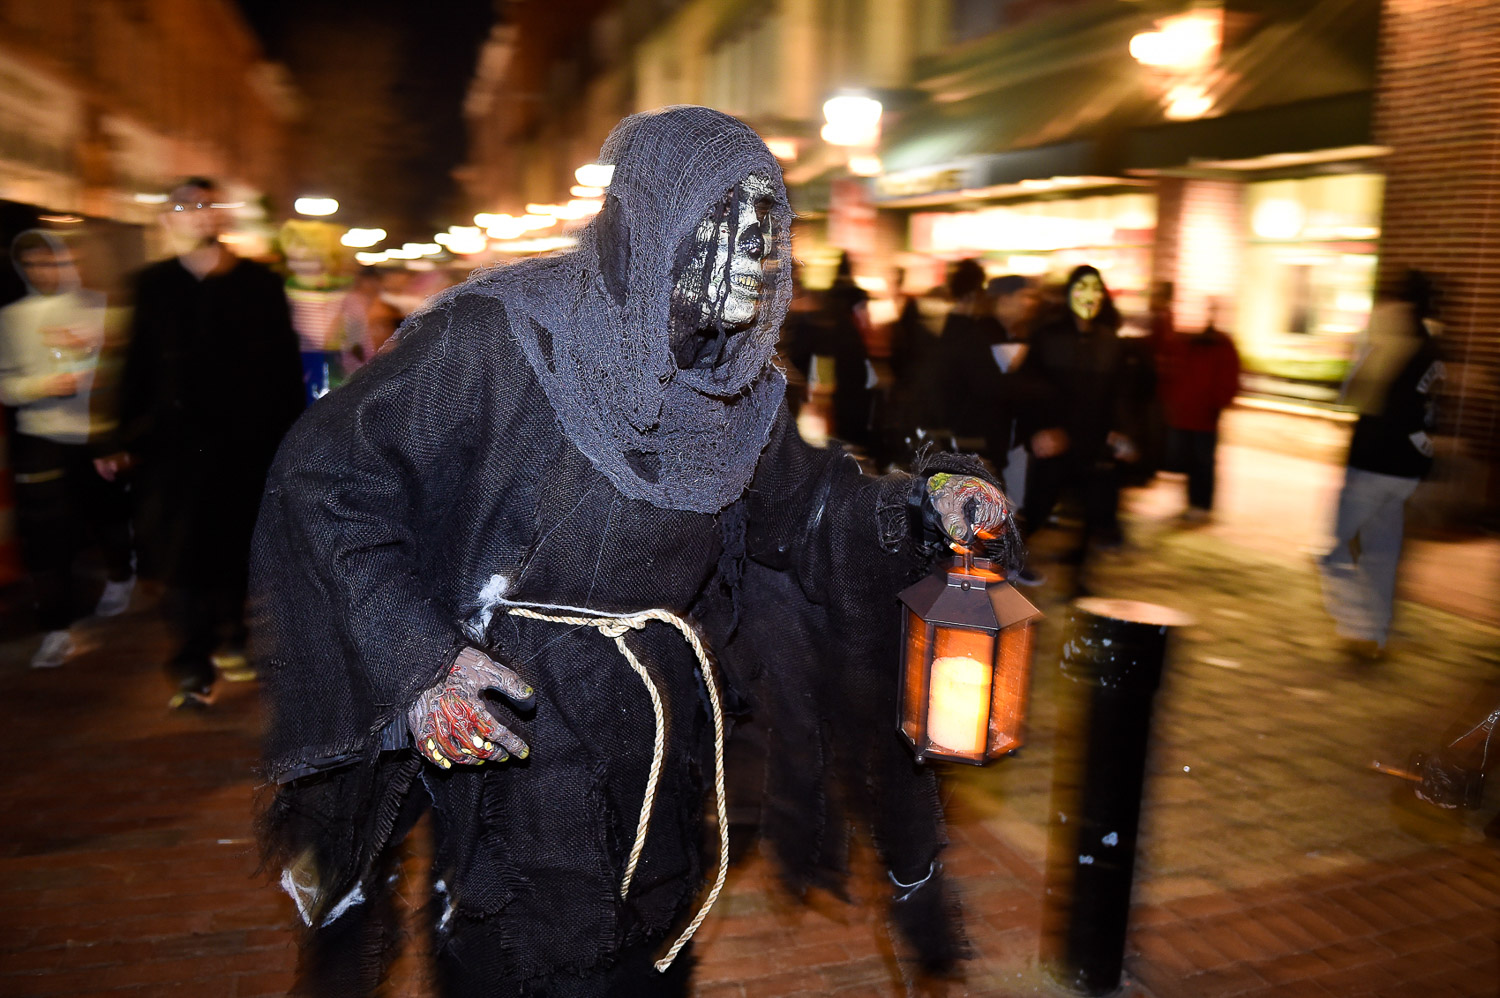 Nikon D4s, 1/10 @ f/2.8, ISO 1600, 24-70mm  Dan Nadeau, from Salem, makes his way down the Essex Street Pedestrian Mall dressed as a ghoul on Halloween night in downtown Salem, Tuesday, Oct. 31, 2017.